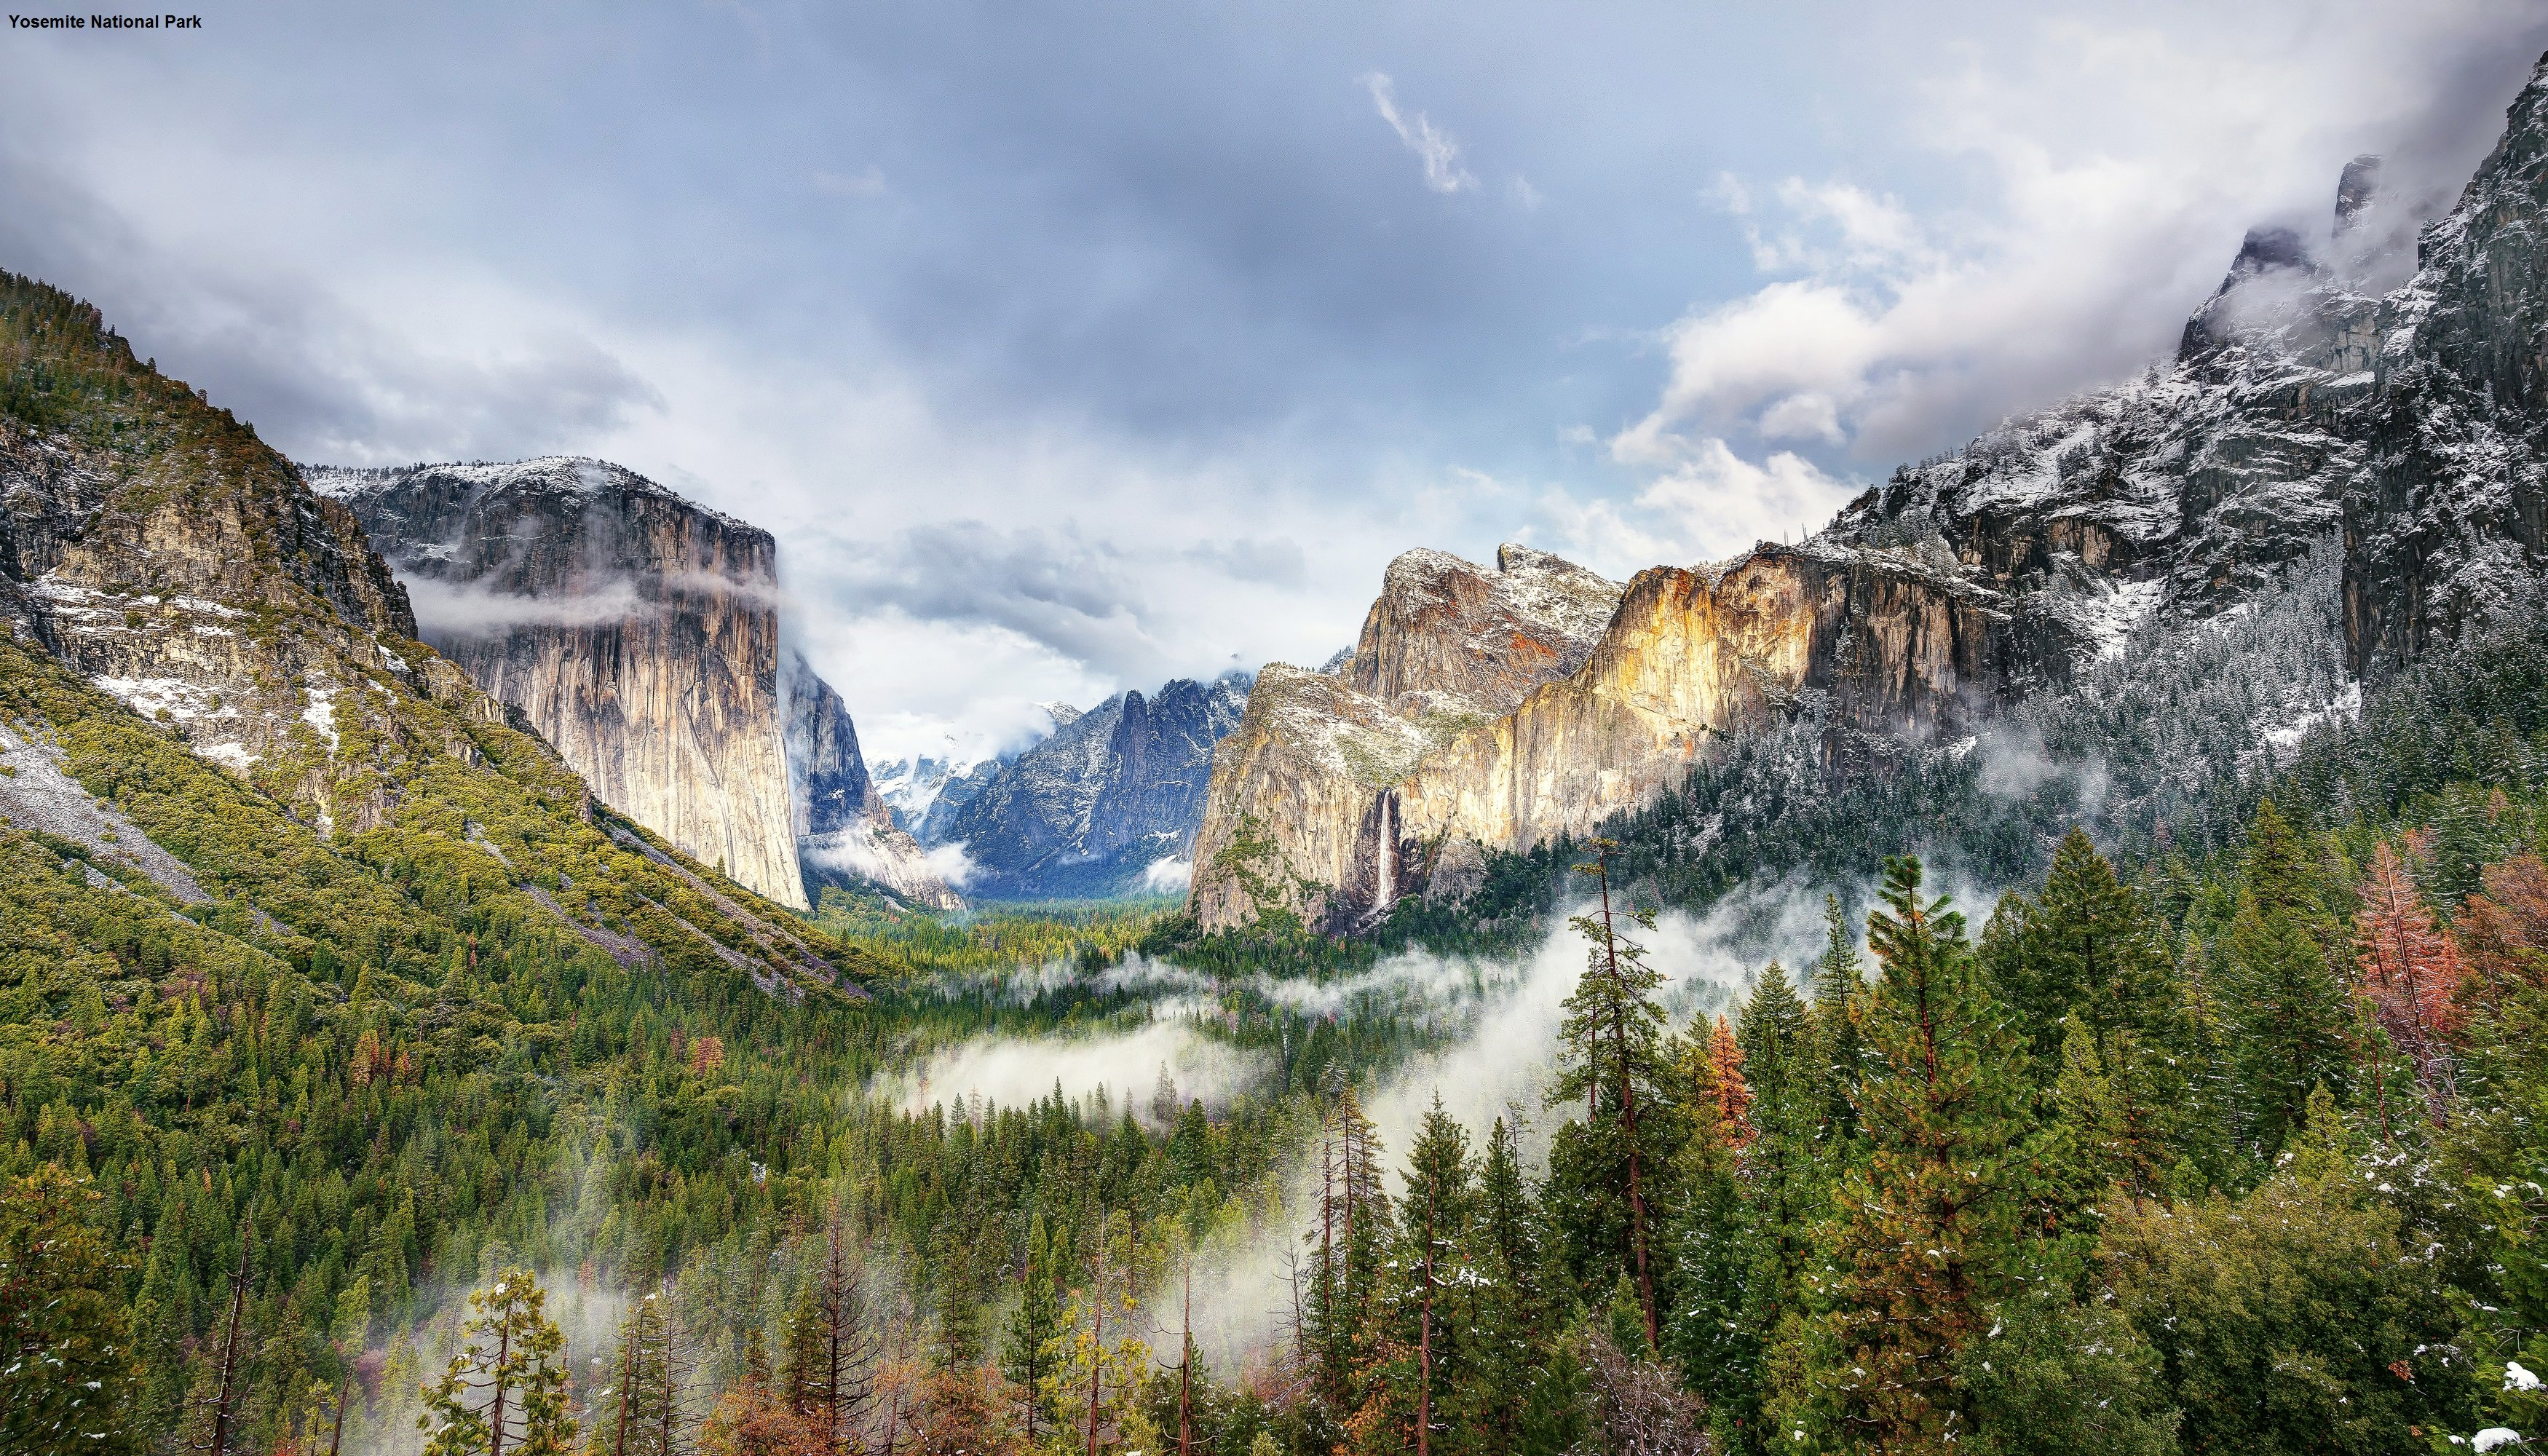 711651-Nature_Yosemite_National_Park